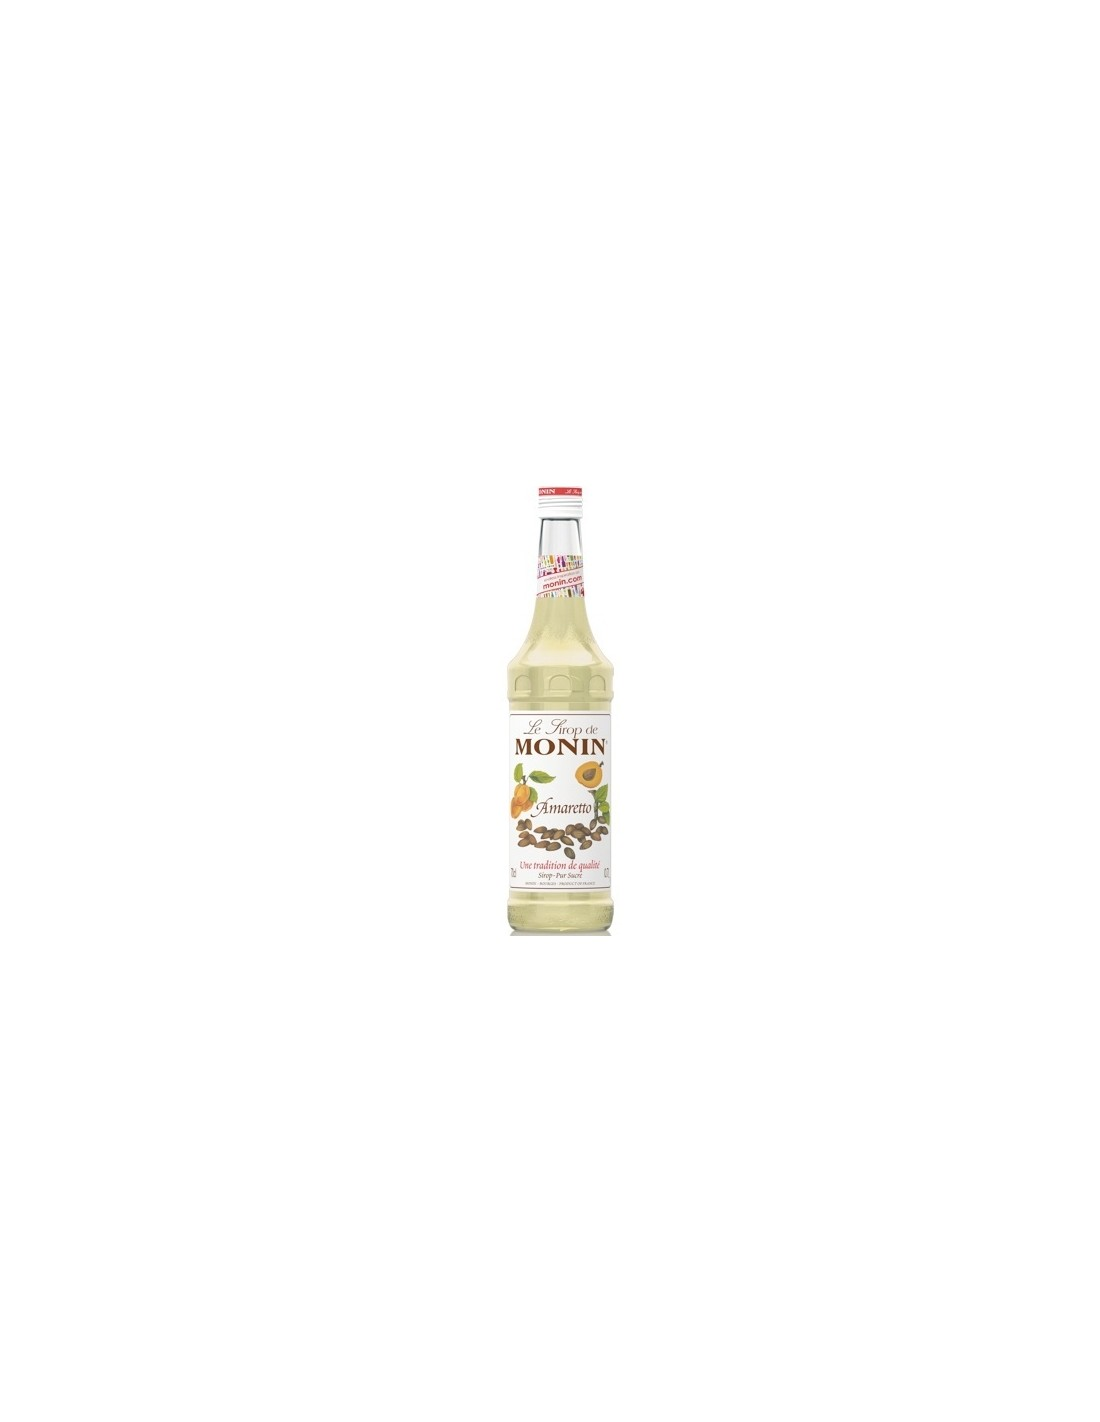 Sirop cocktail Monin Amaretto, 0.7L, Franta